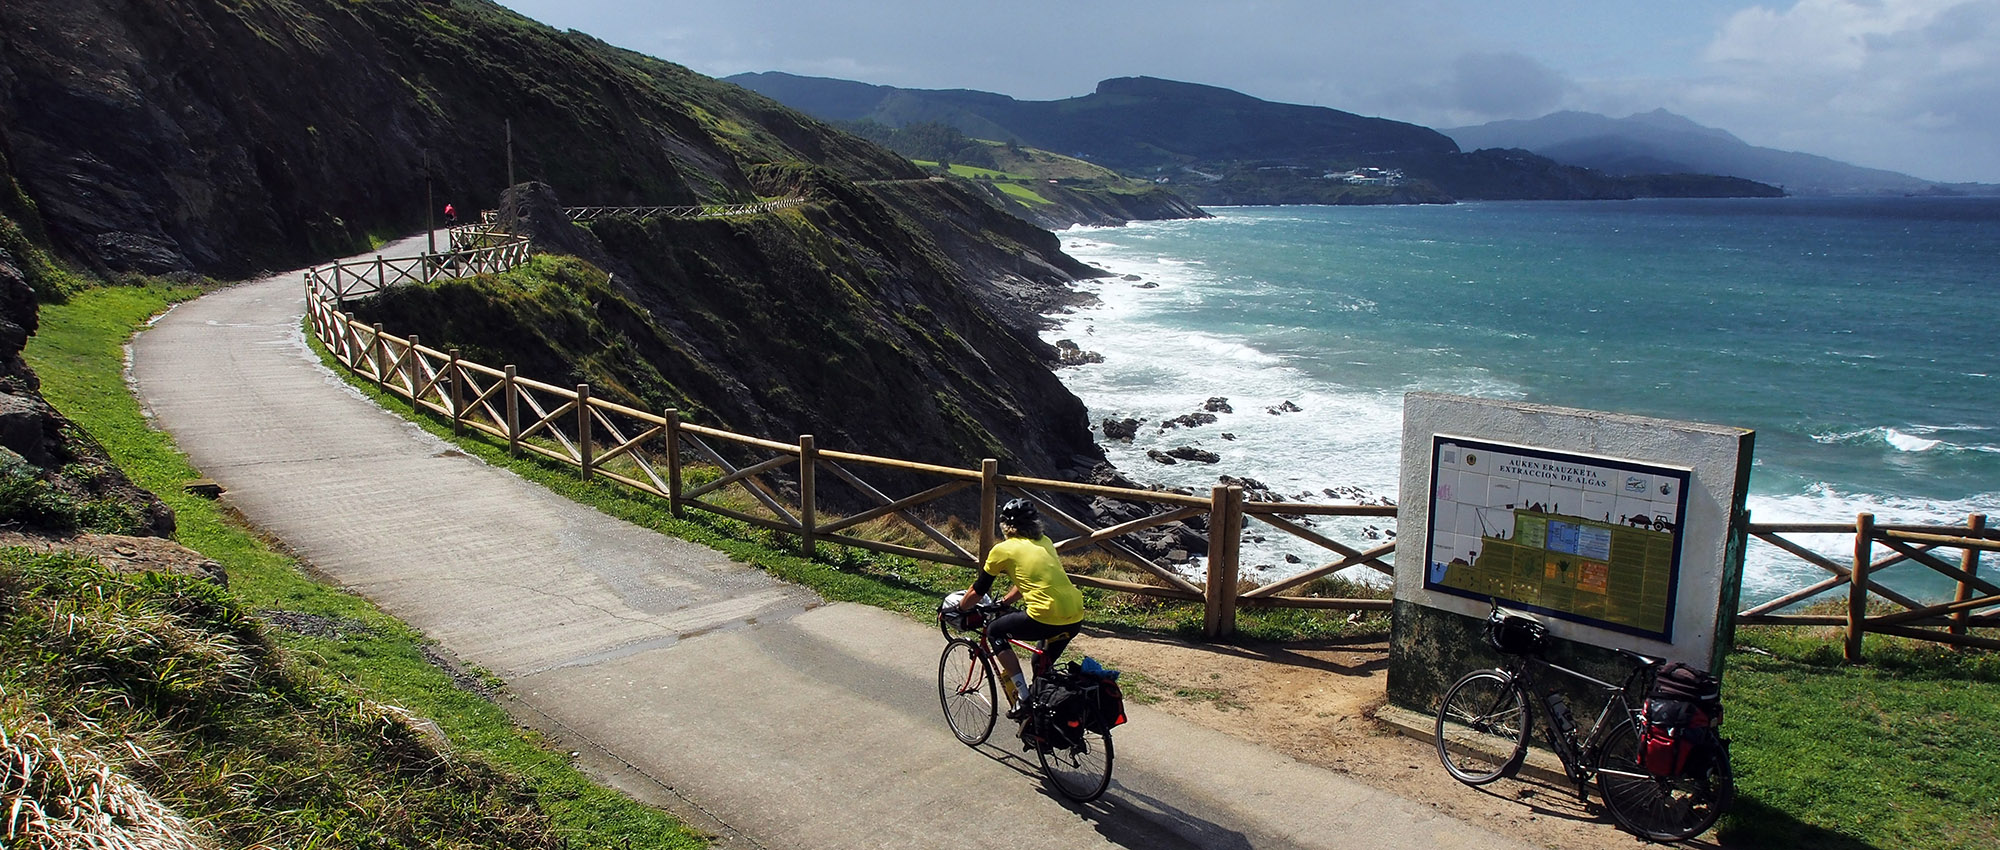 Clifftop rail trail: Via Verde Paseo de Itsaslur, a relic of Anglo-Spanish iron mining on the rugged Basque coast